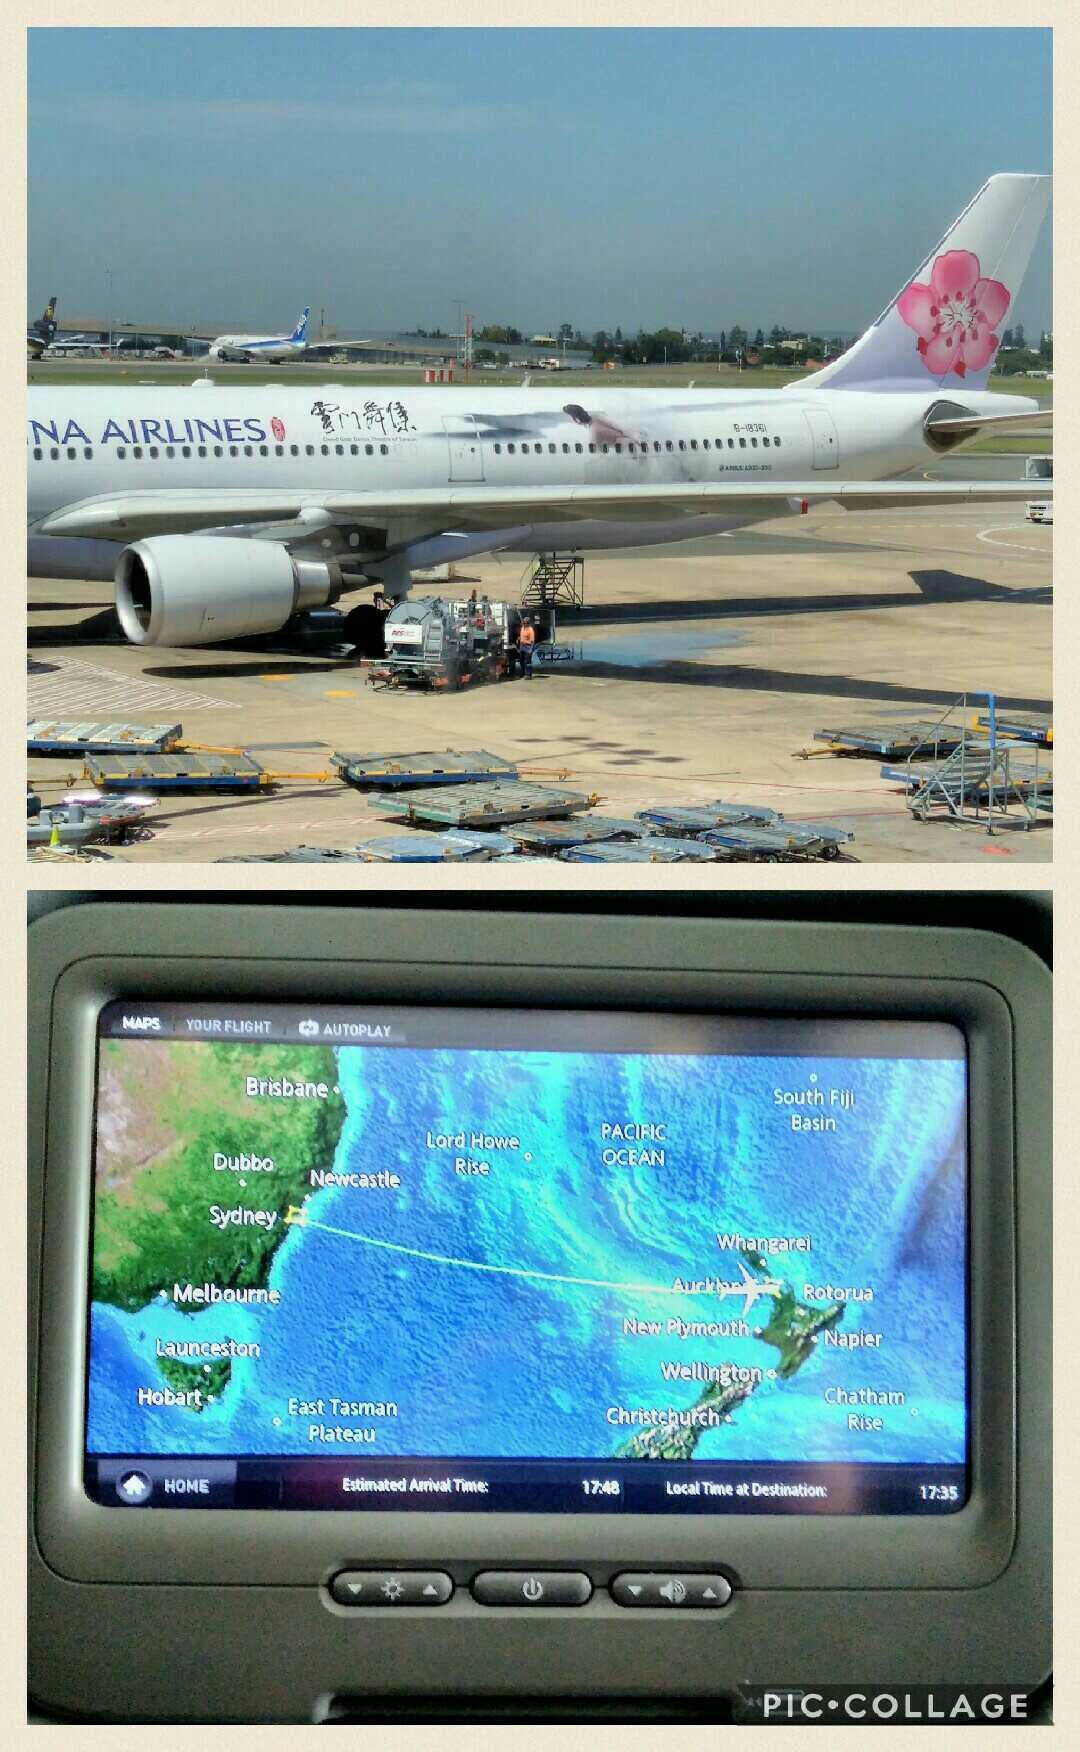 China Airlines - Sydney